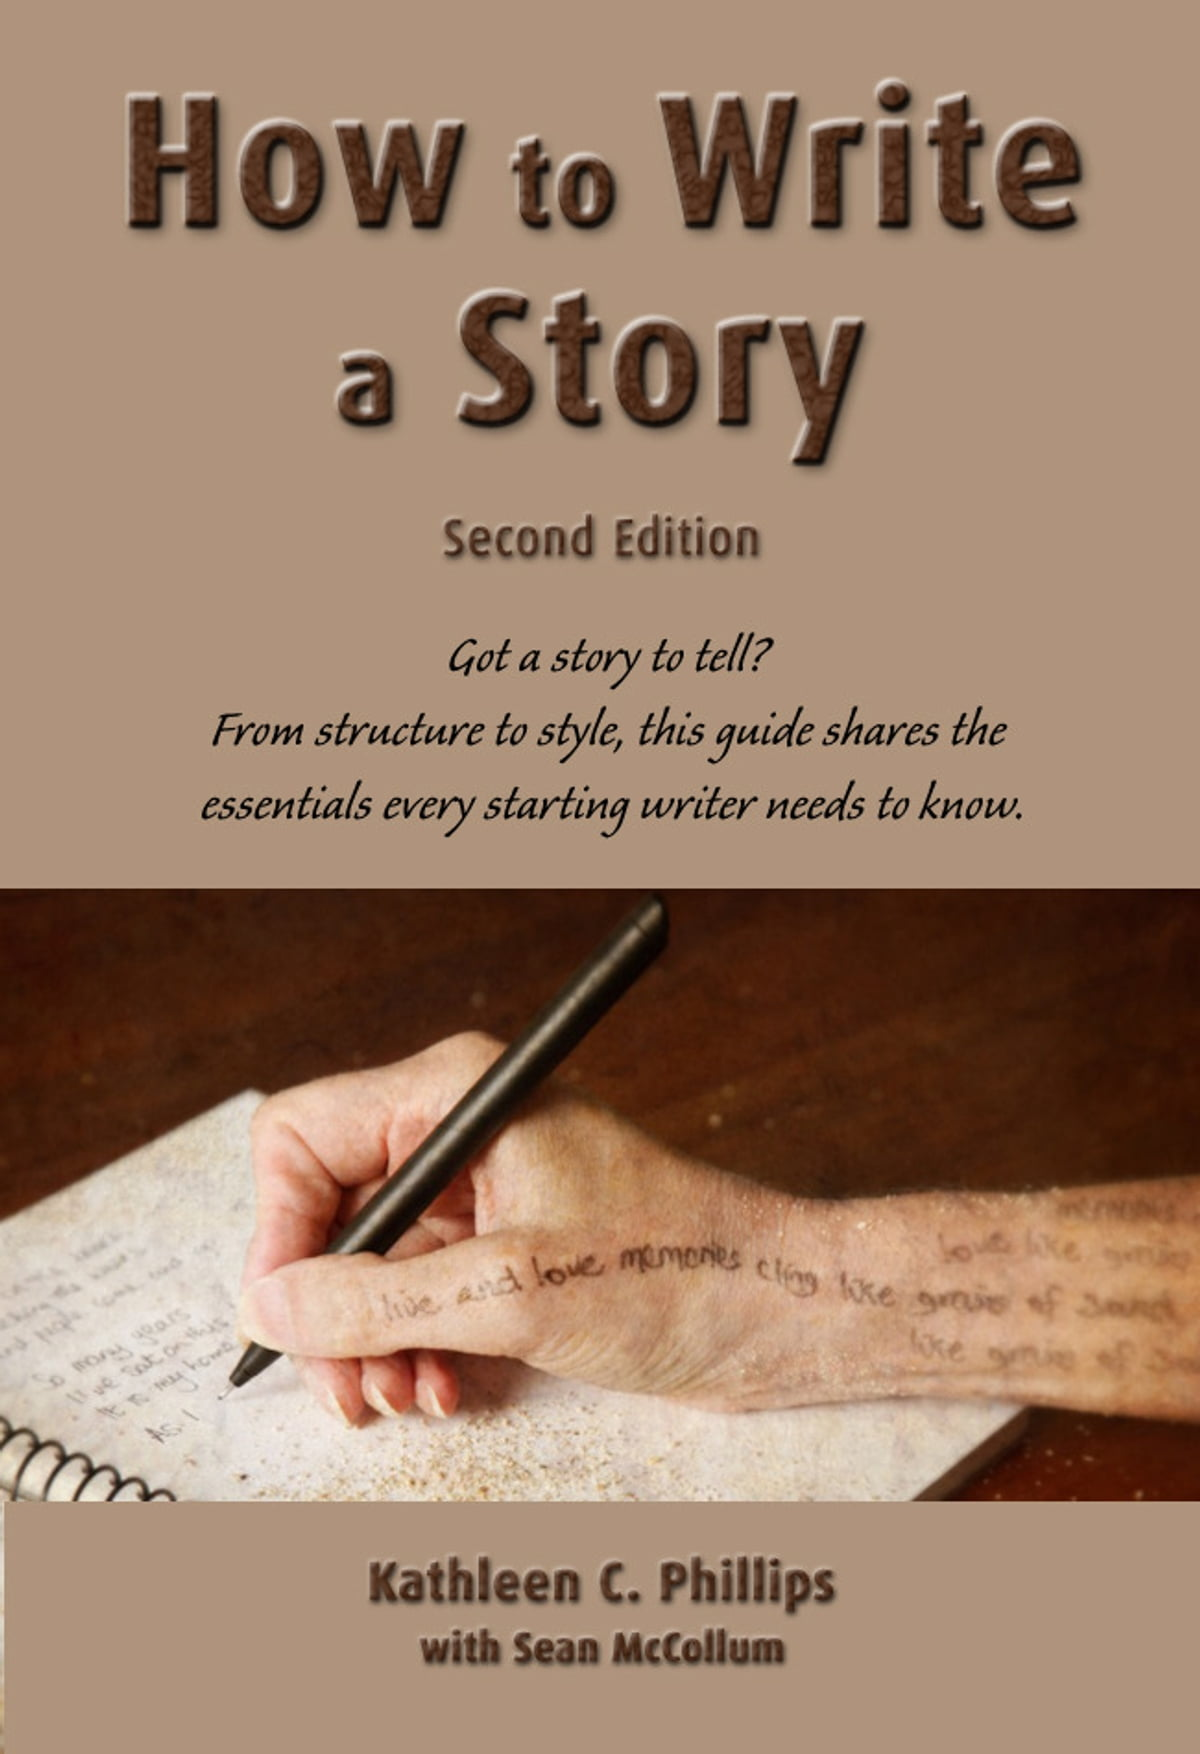 How to Write a Story: Second Edition eBook by Kathleen C. Phillips -  9781476076584 | Rakuten Kobo